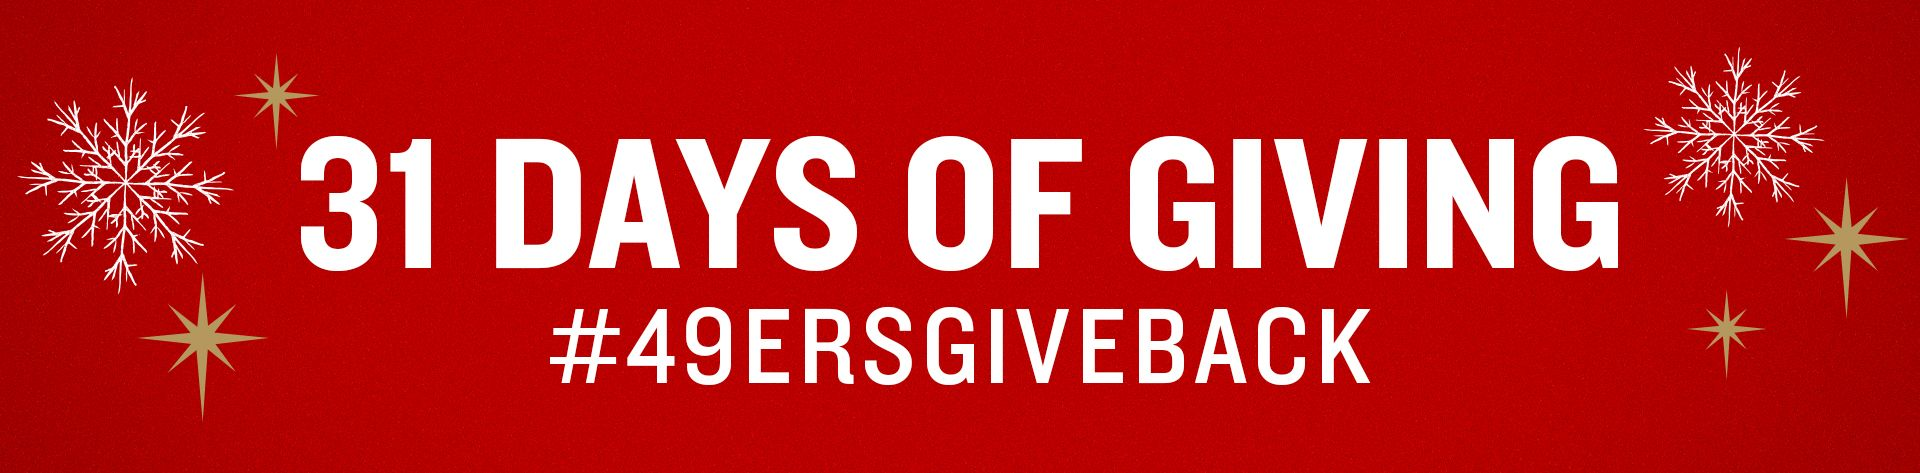 31DaysofGiving